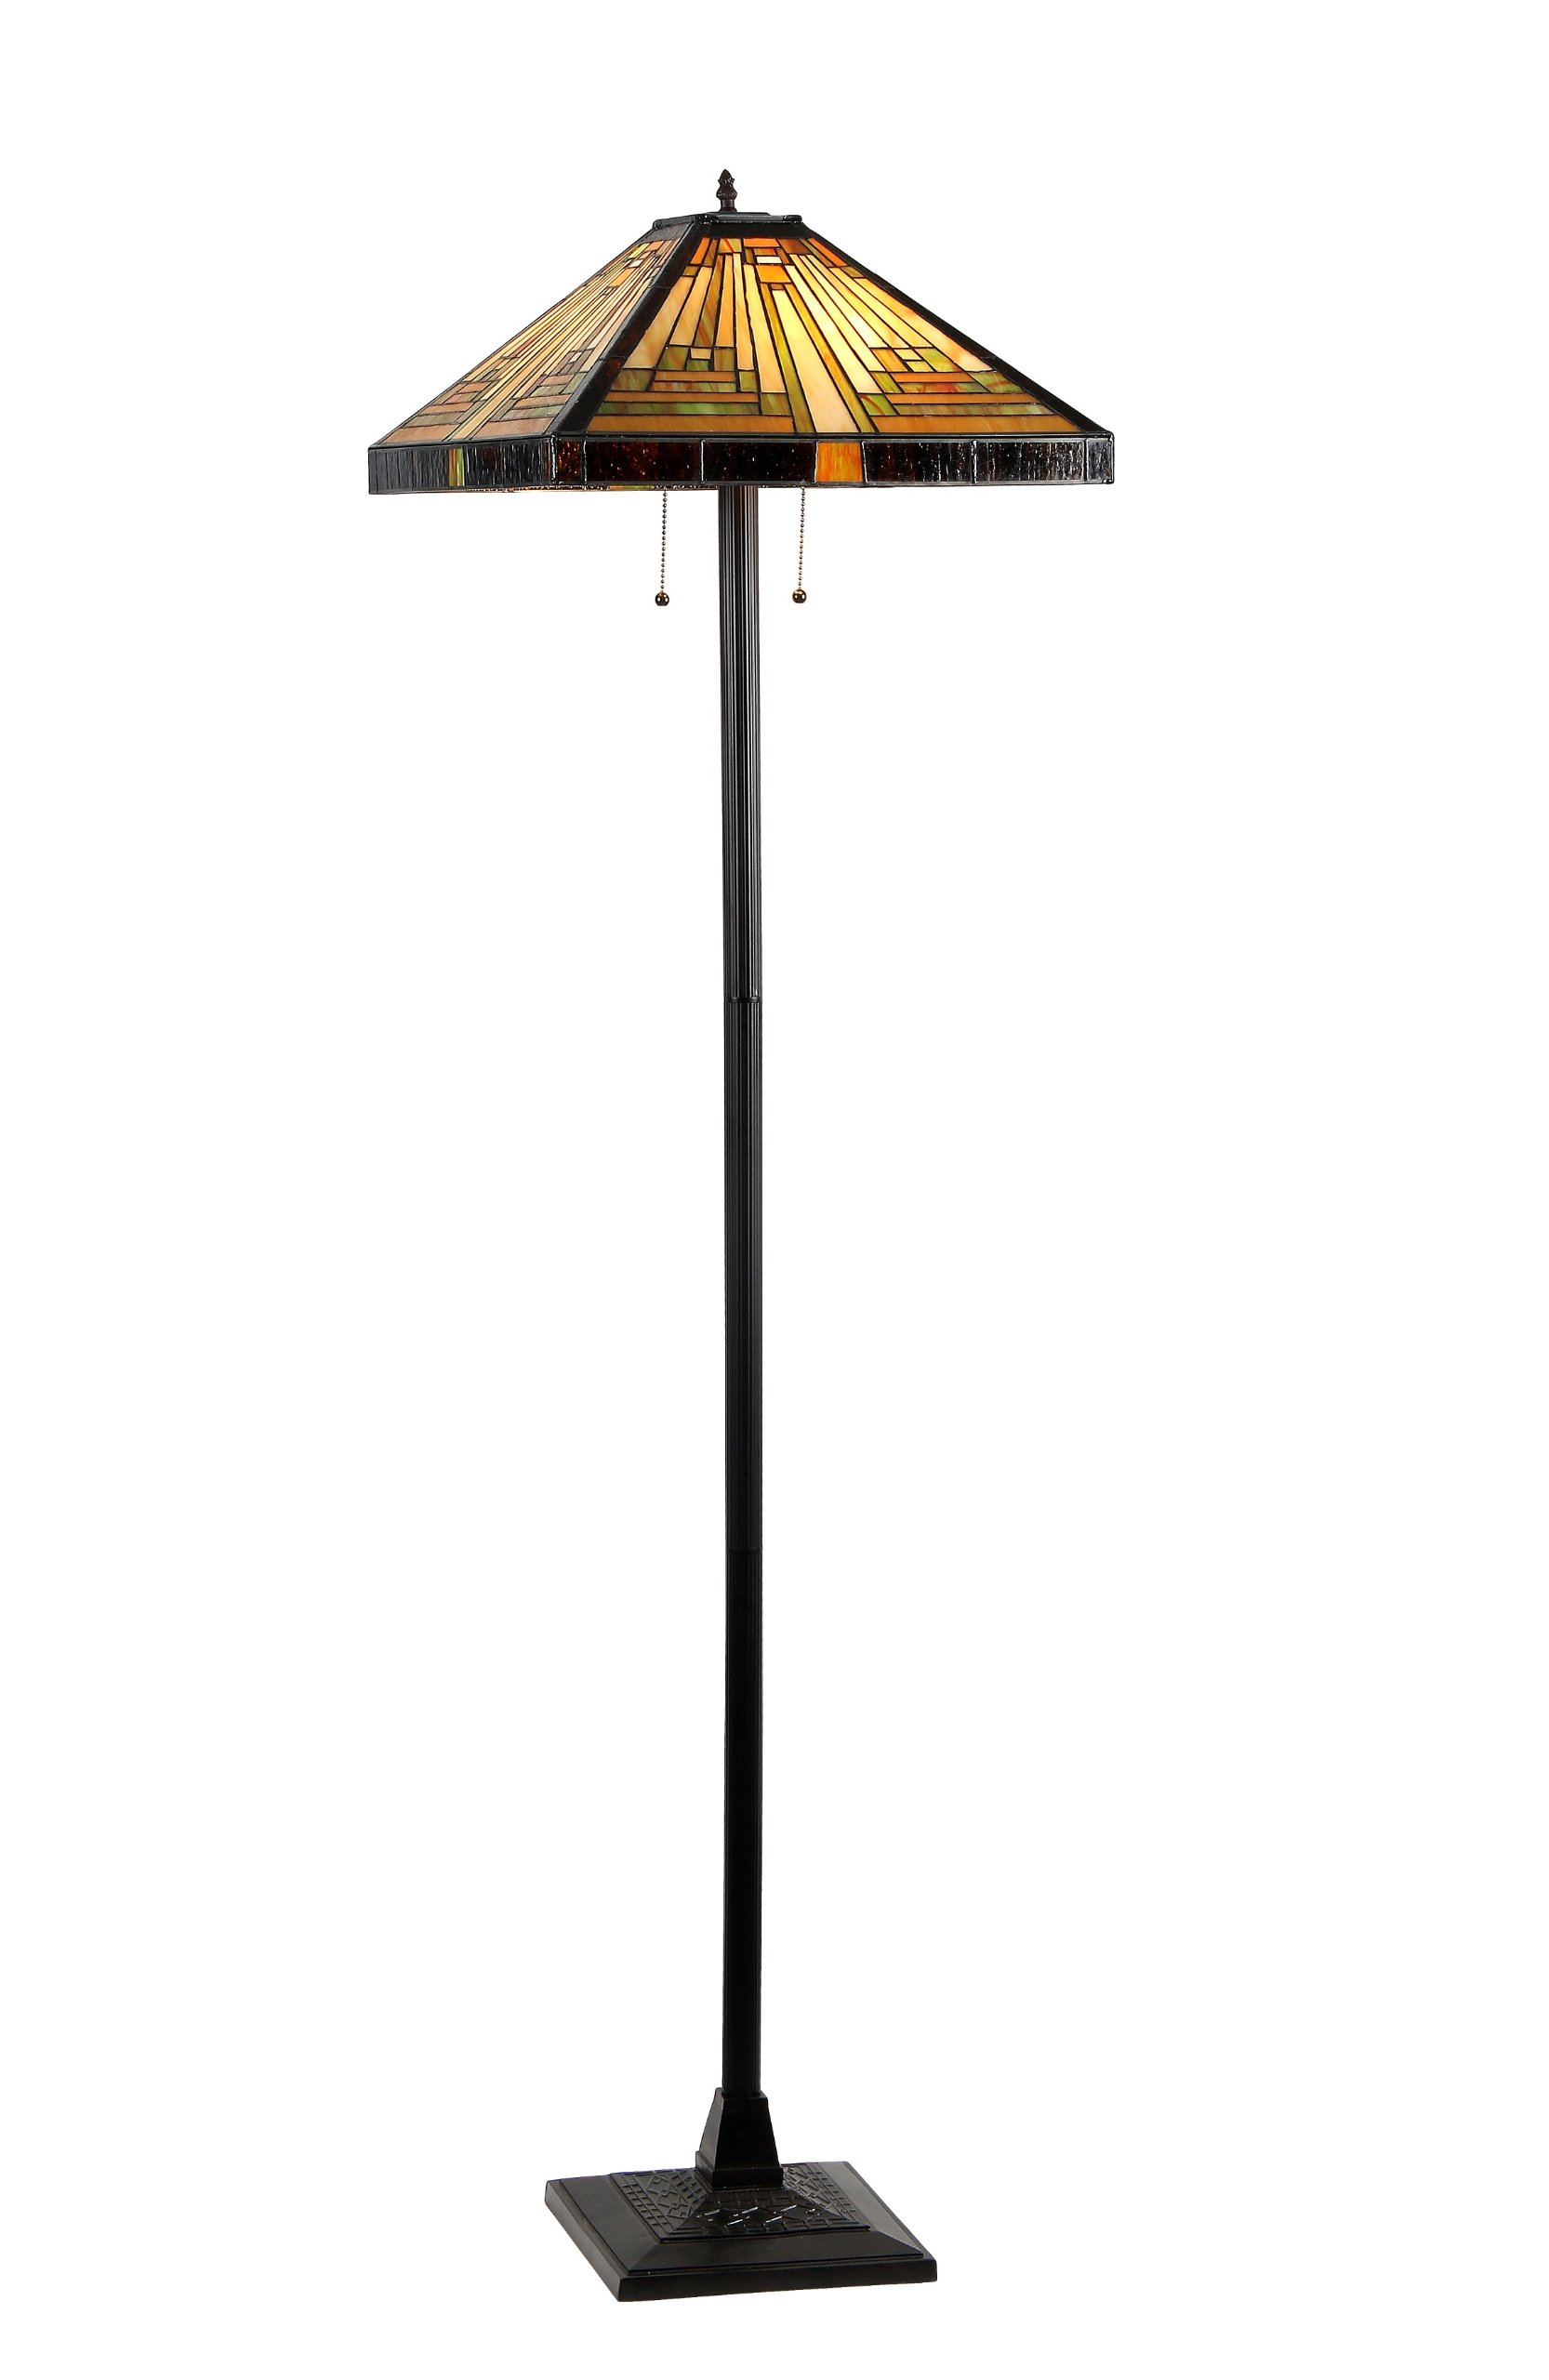 Chloe Lighting CH33359MR18-FL2 Innes Tiffany-Style Mission 2-Light Floor Lamp with 18-Inch Shade by Chloe Lighting